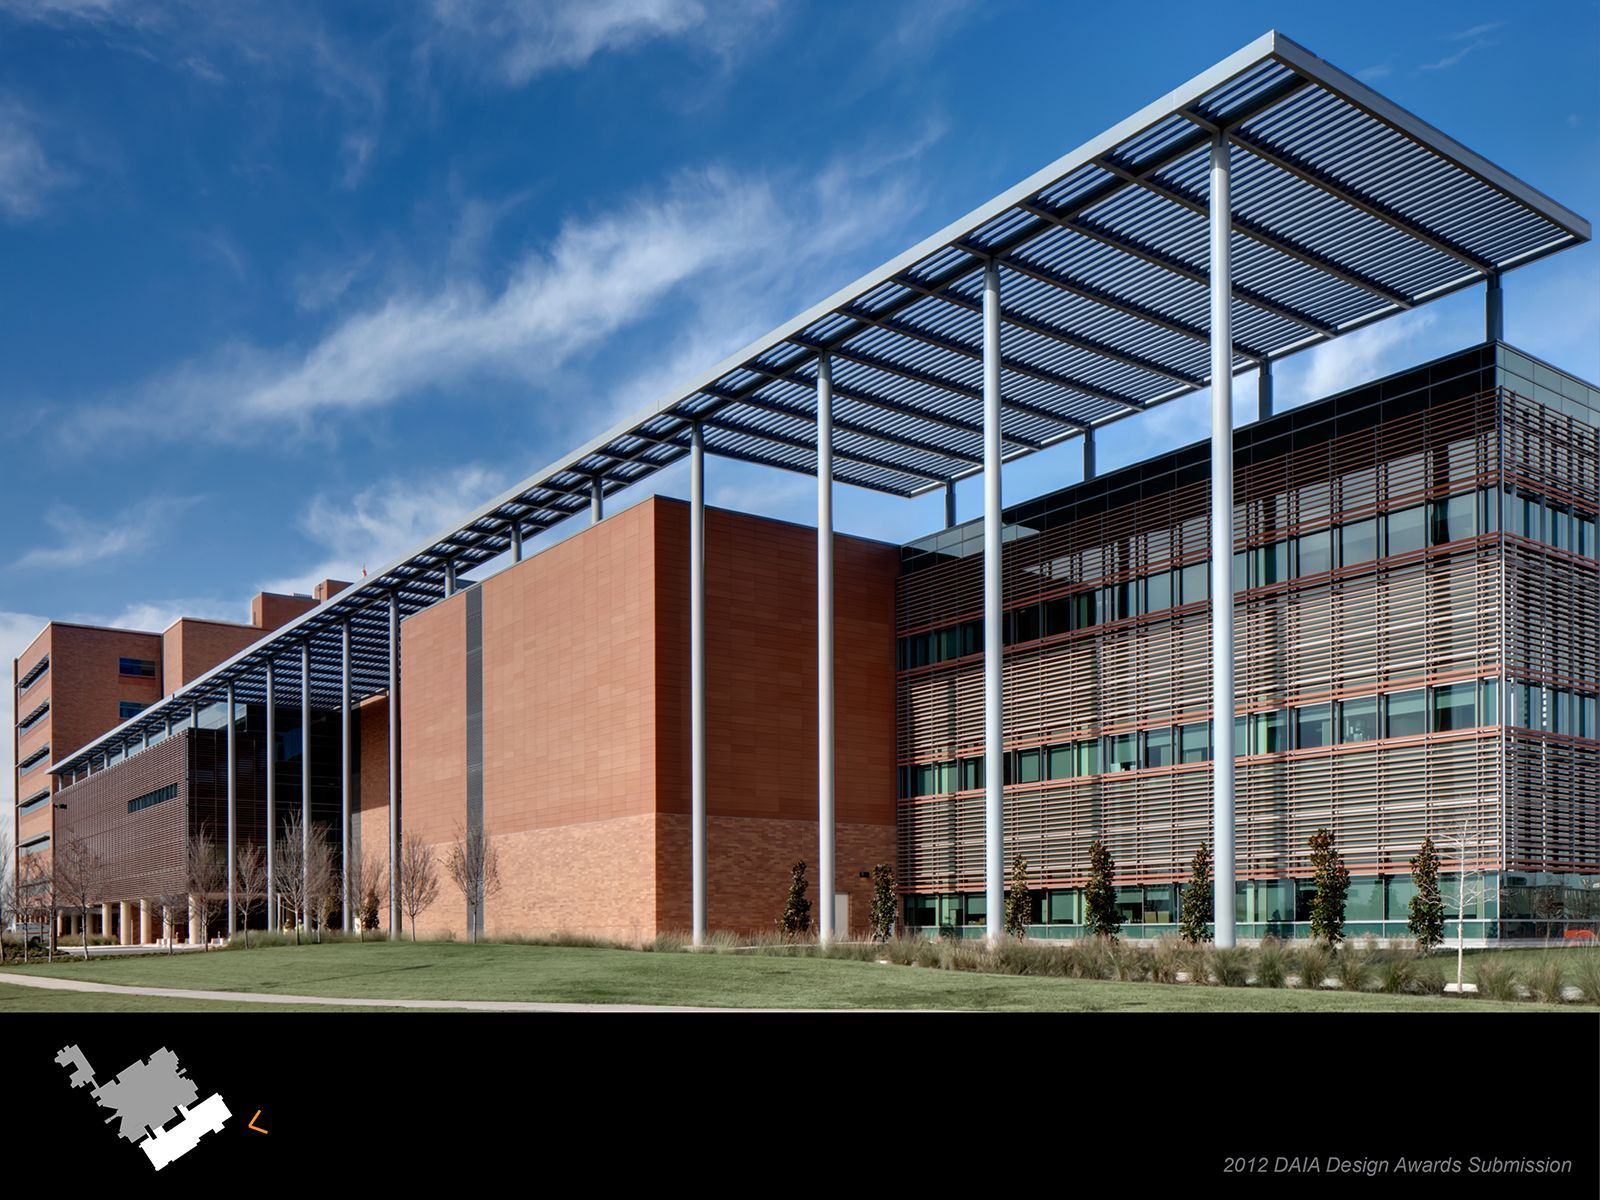 Special Juror Commendation Addition To A Military Hospital Designer Rtkl Green Building Architecture Residential Building Design Energy Efficient Buildings